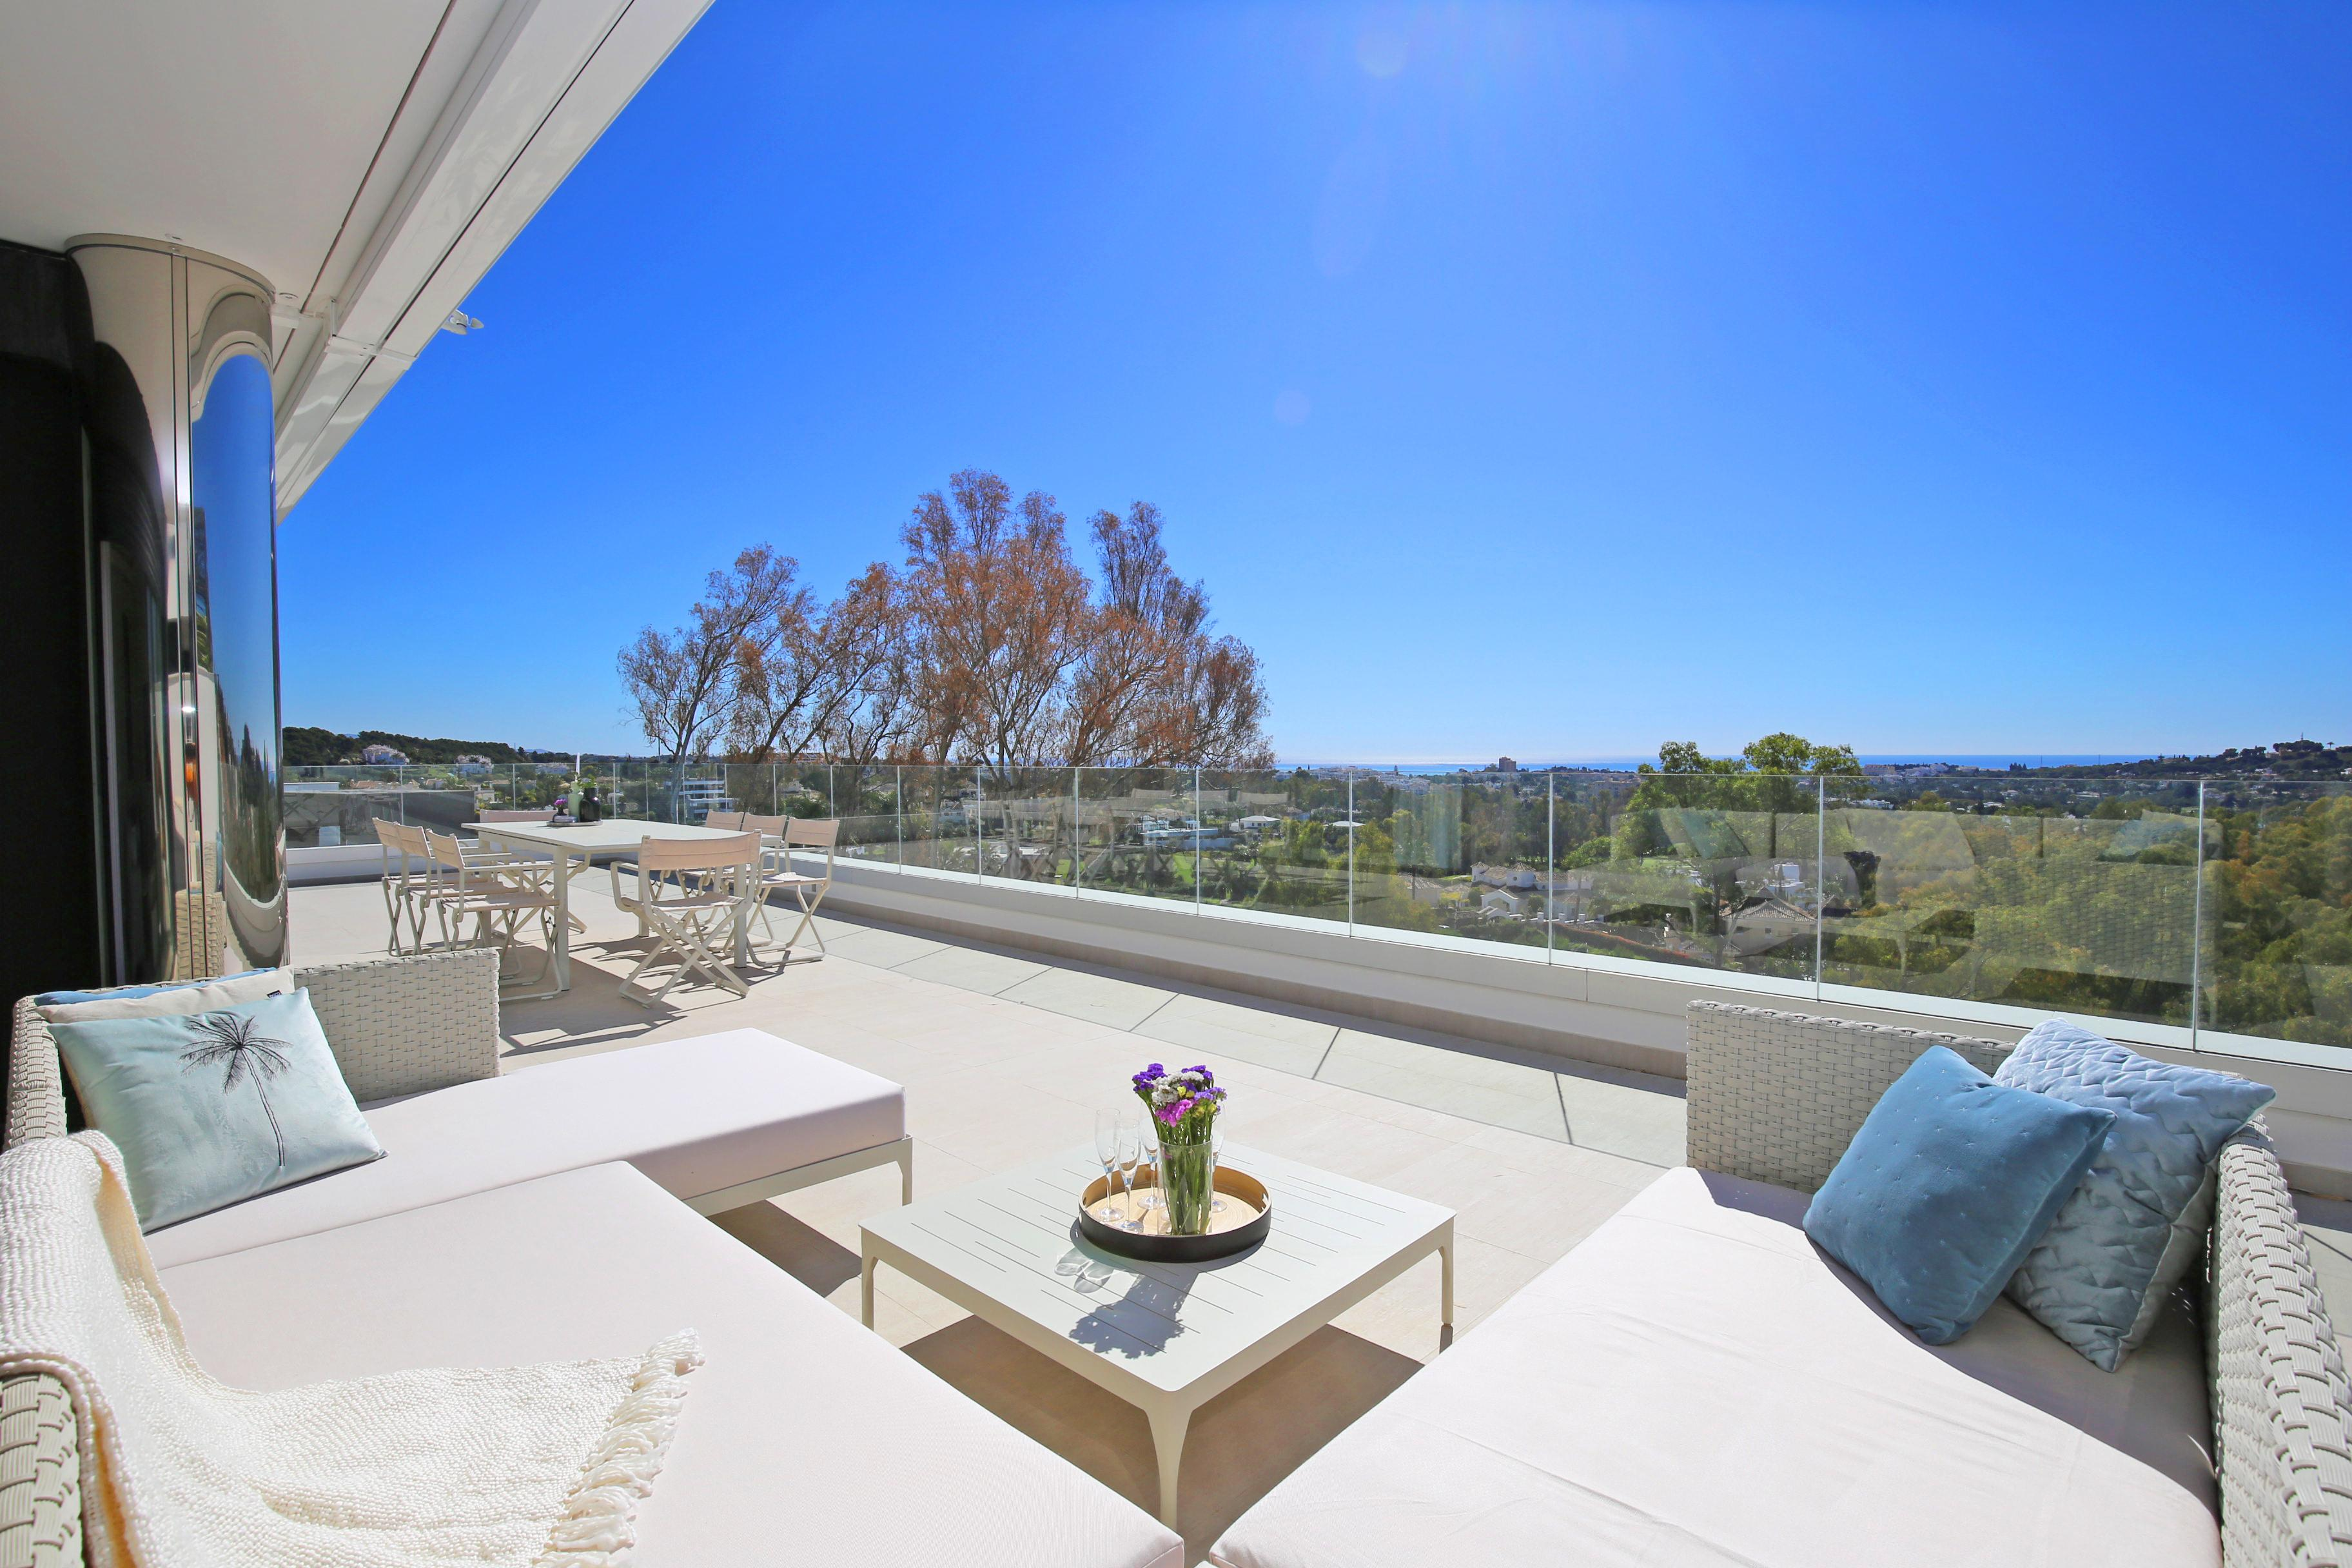 48f9ab7d3d7b6 Marbella Living will be hosting an Open House on Friday 12th April between  2 and 4pm in our exclusive listing in Azahar de Marbella, Nueva Andalucia.